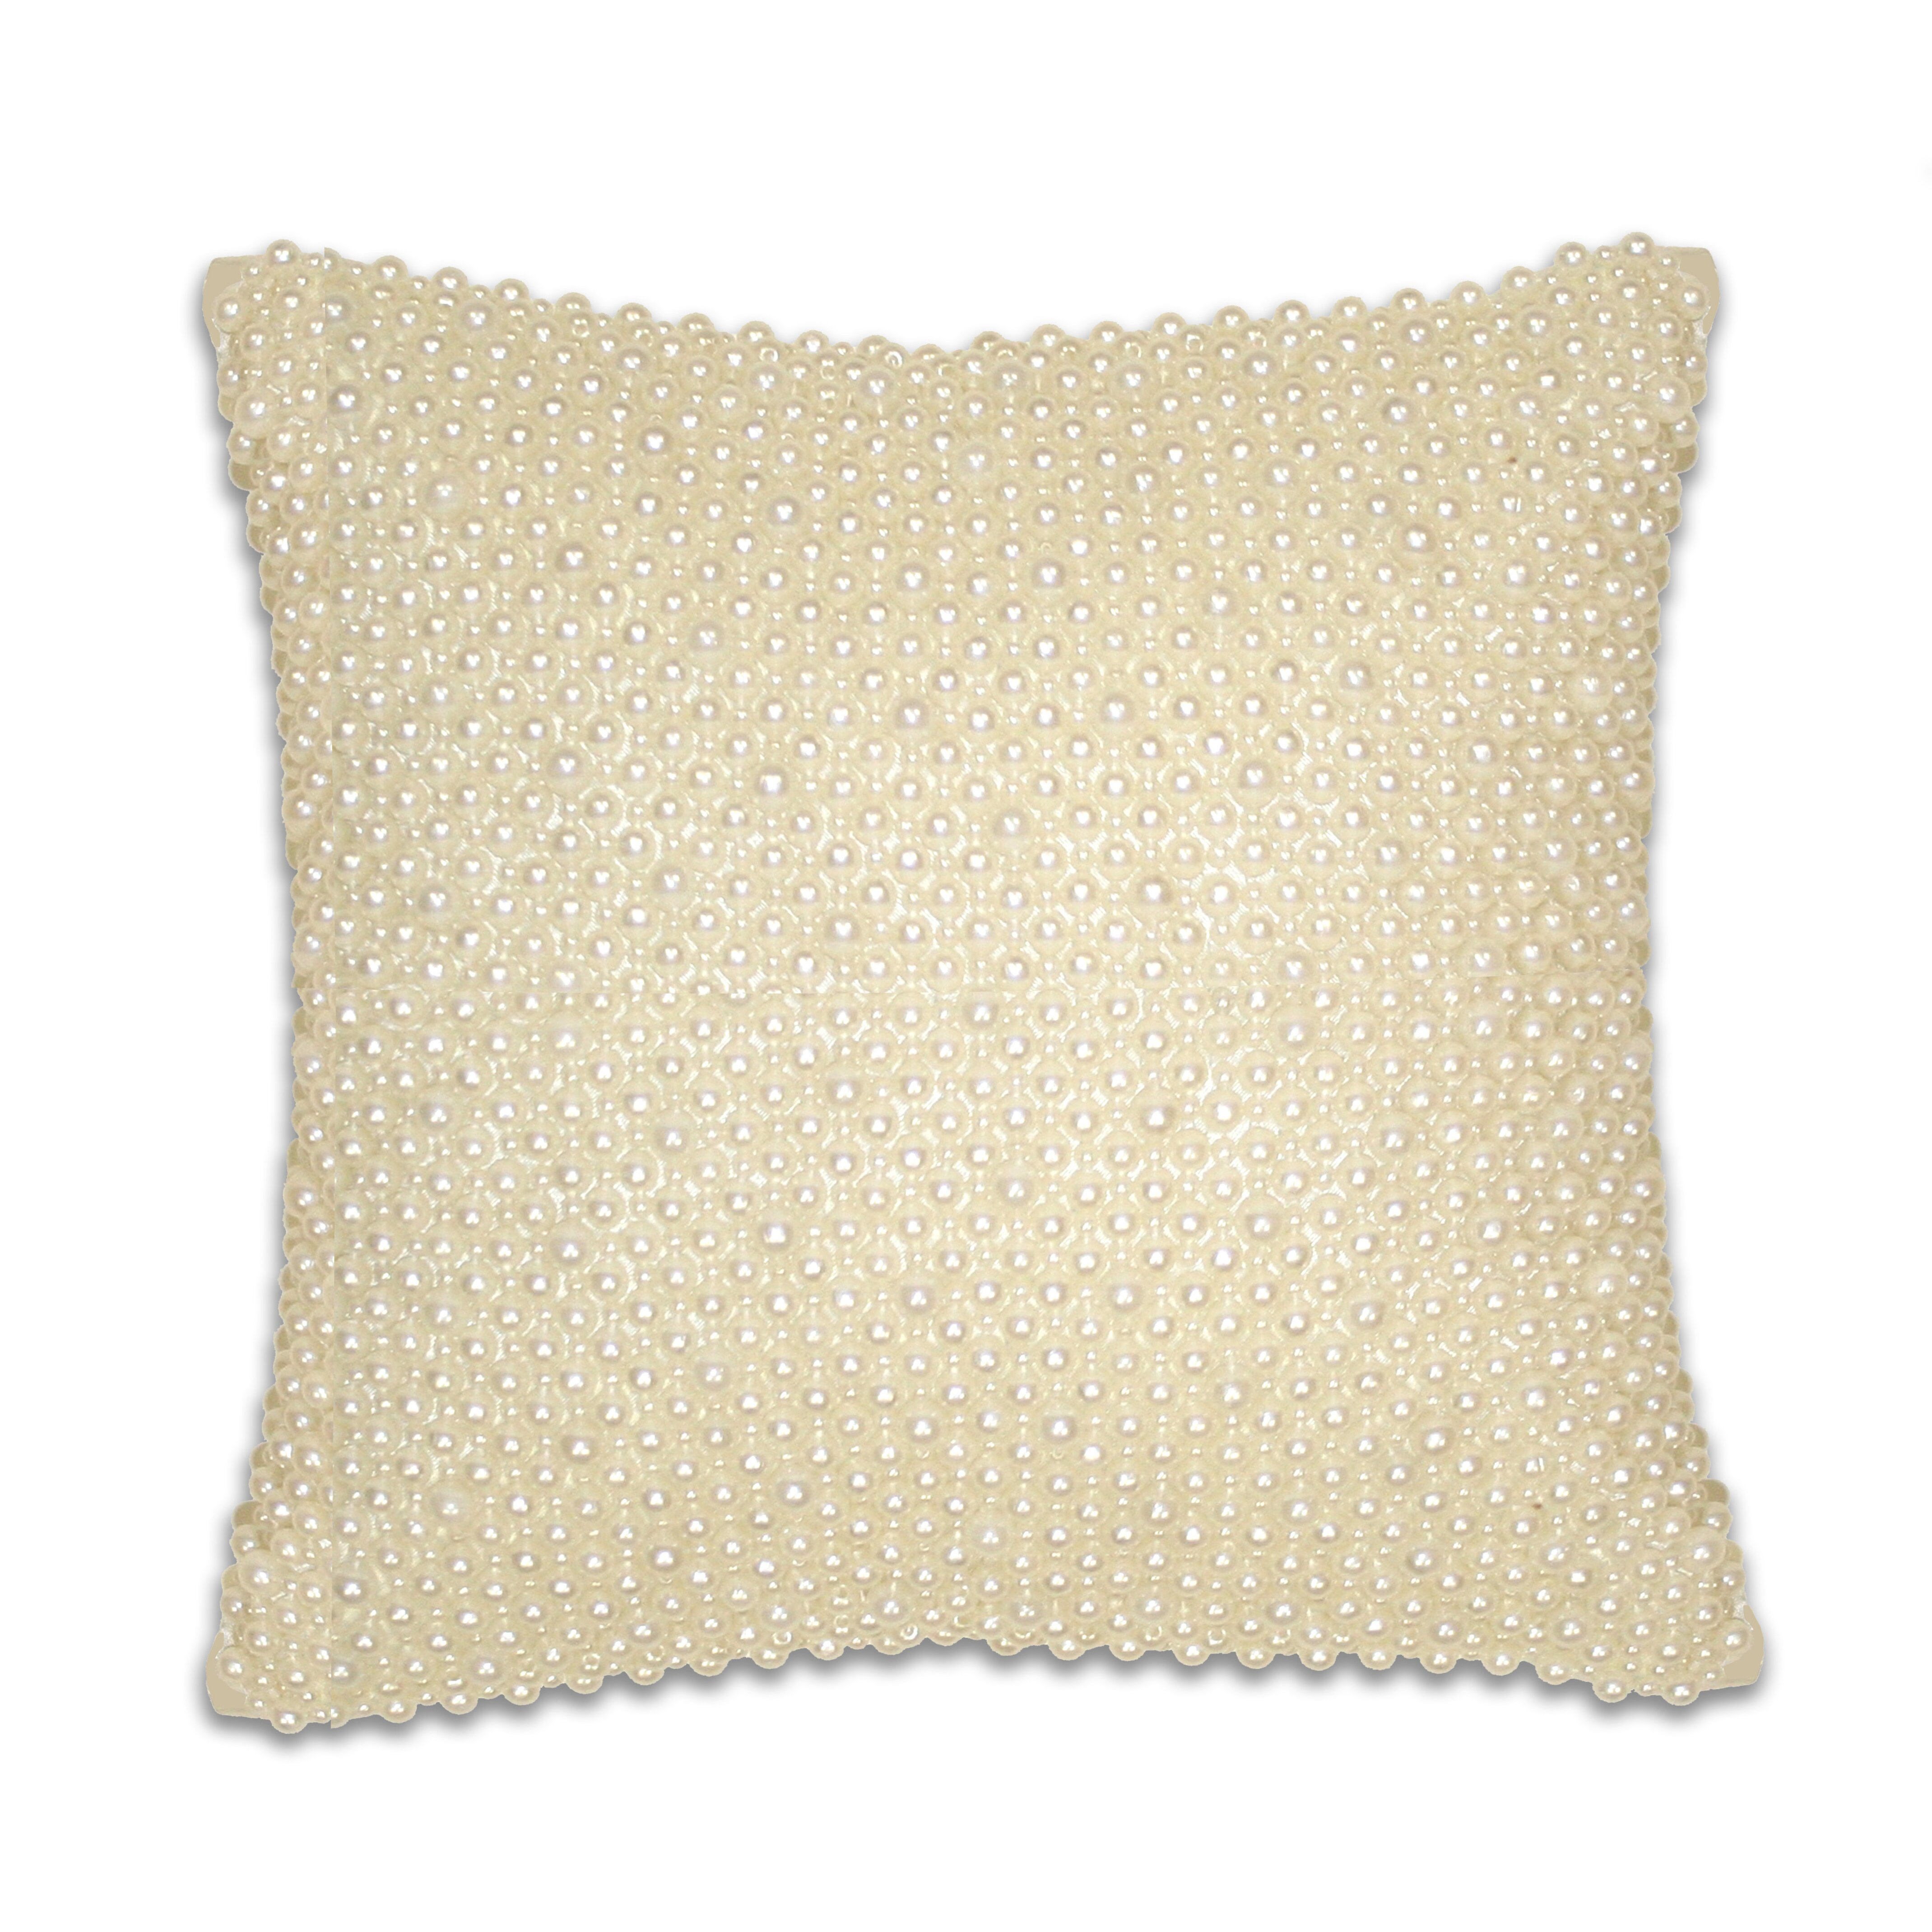 Decorative Pillow With Pearls : Thro by Marlo Lorenz Ivory Pearl Velvet Throw Pillow & Reviews Wayfair